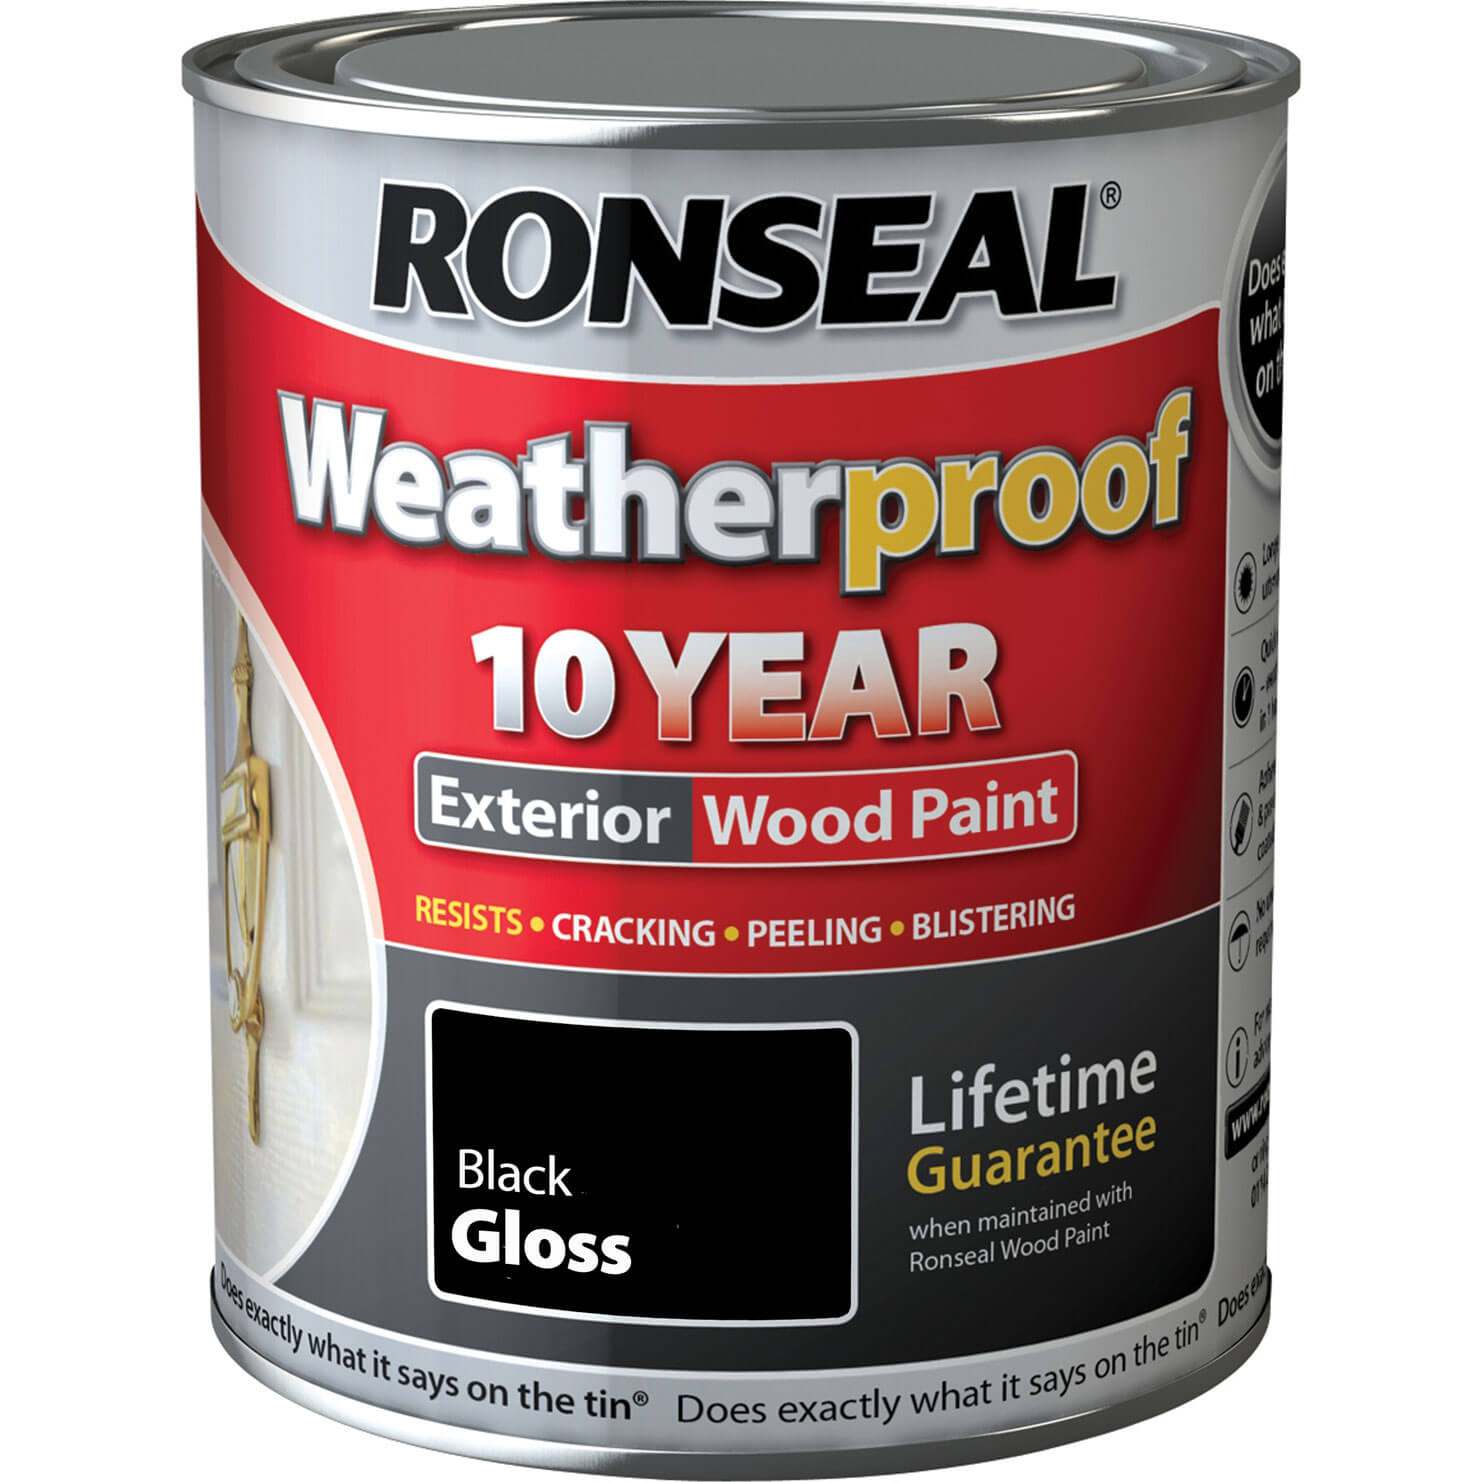 Ronseal weatherproof 10 year exterior gloss wood paint - Exterior white gloss paint image ...